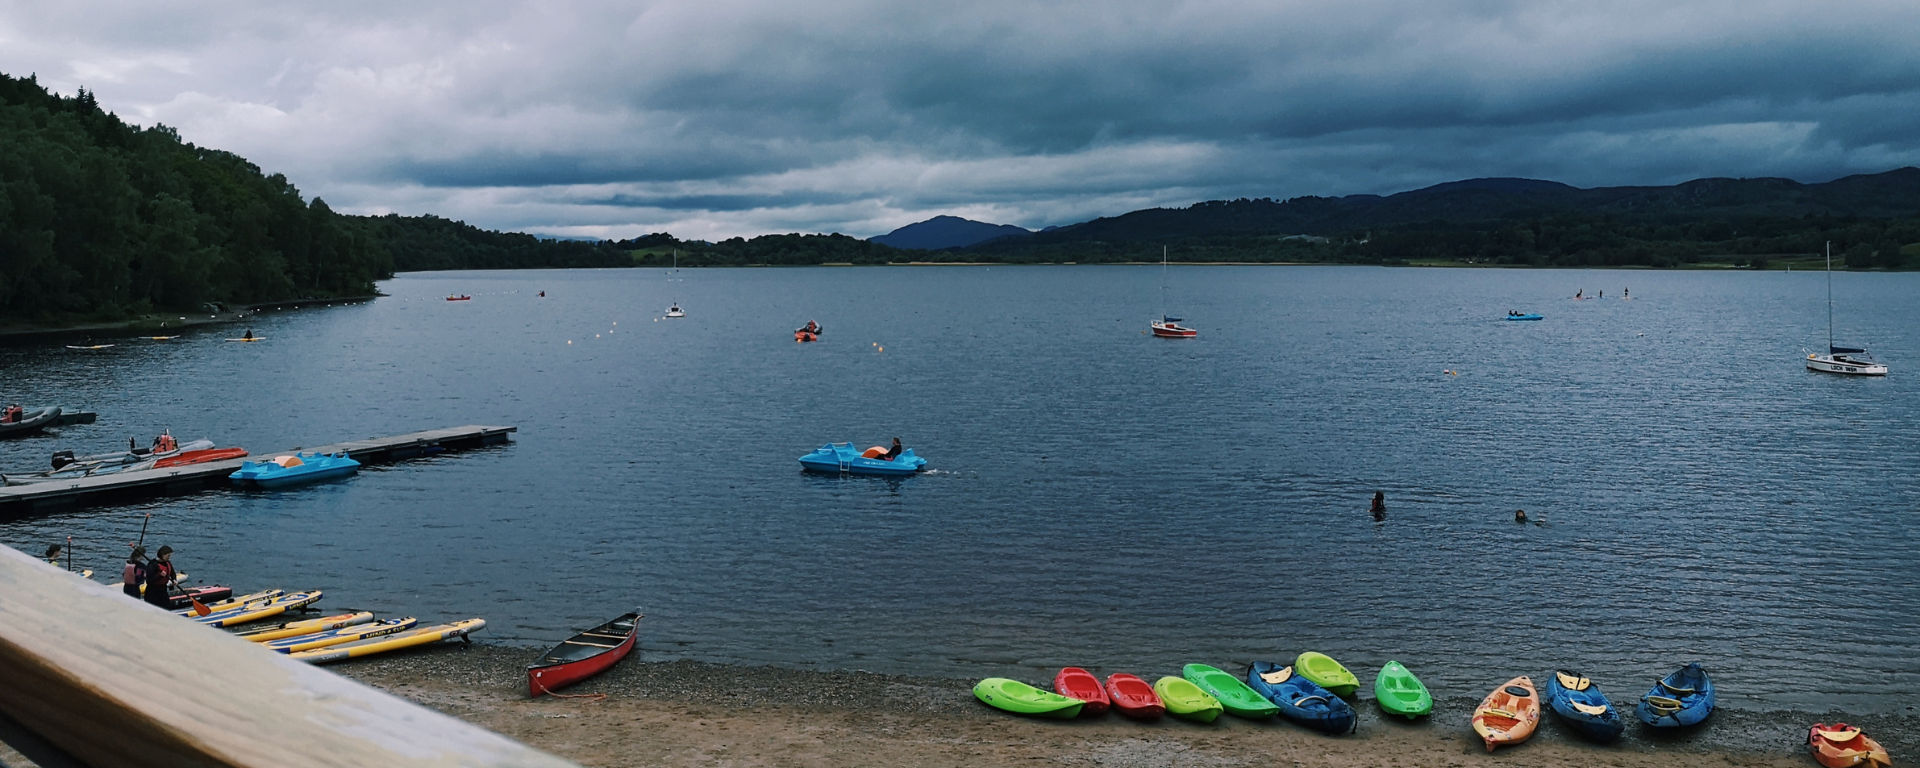 A large loch stretches to the distance, there are various kayaks, boats and paddle boards on the shore and in the water